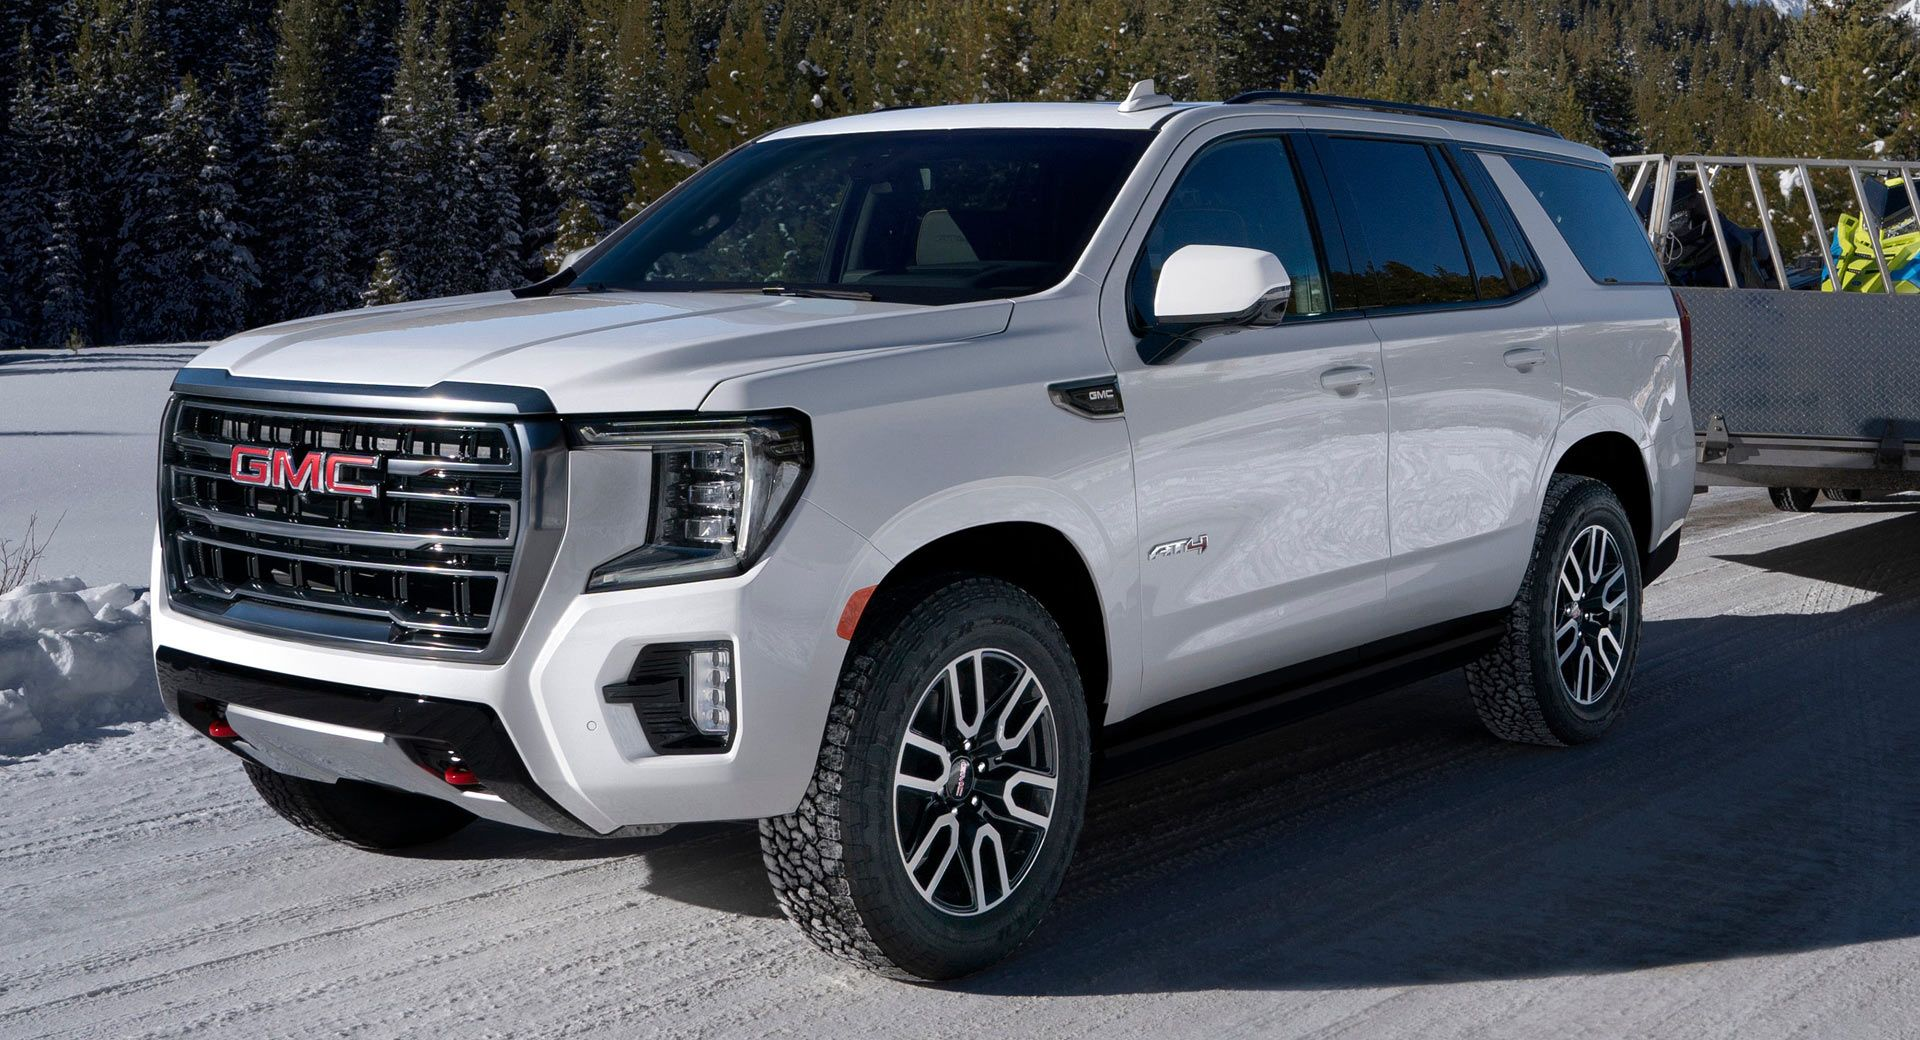 The 2021 Gmc Yukon Is Larger More Luxurious And More Comfortable Than Ever Before In 2020 Gmc Yukon Denali Gmc Yukon Gmc Vehicles